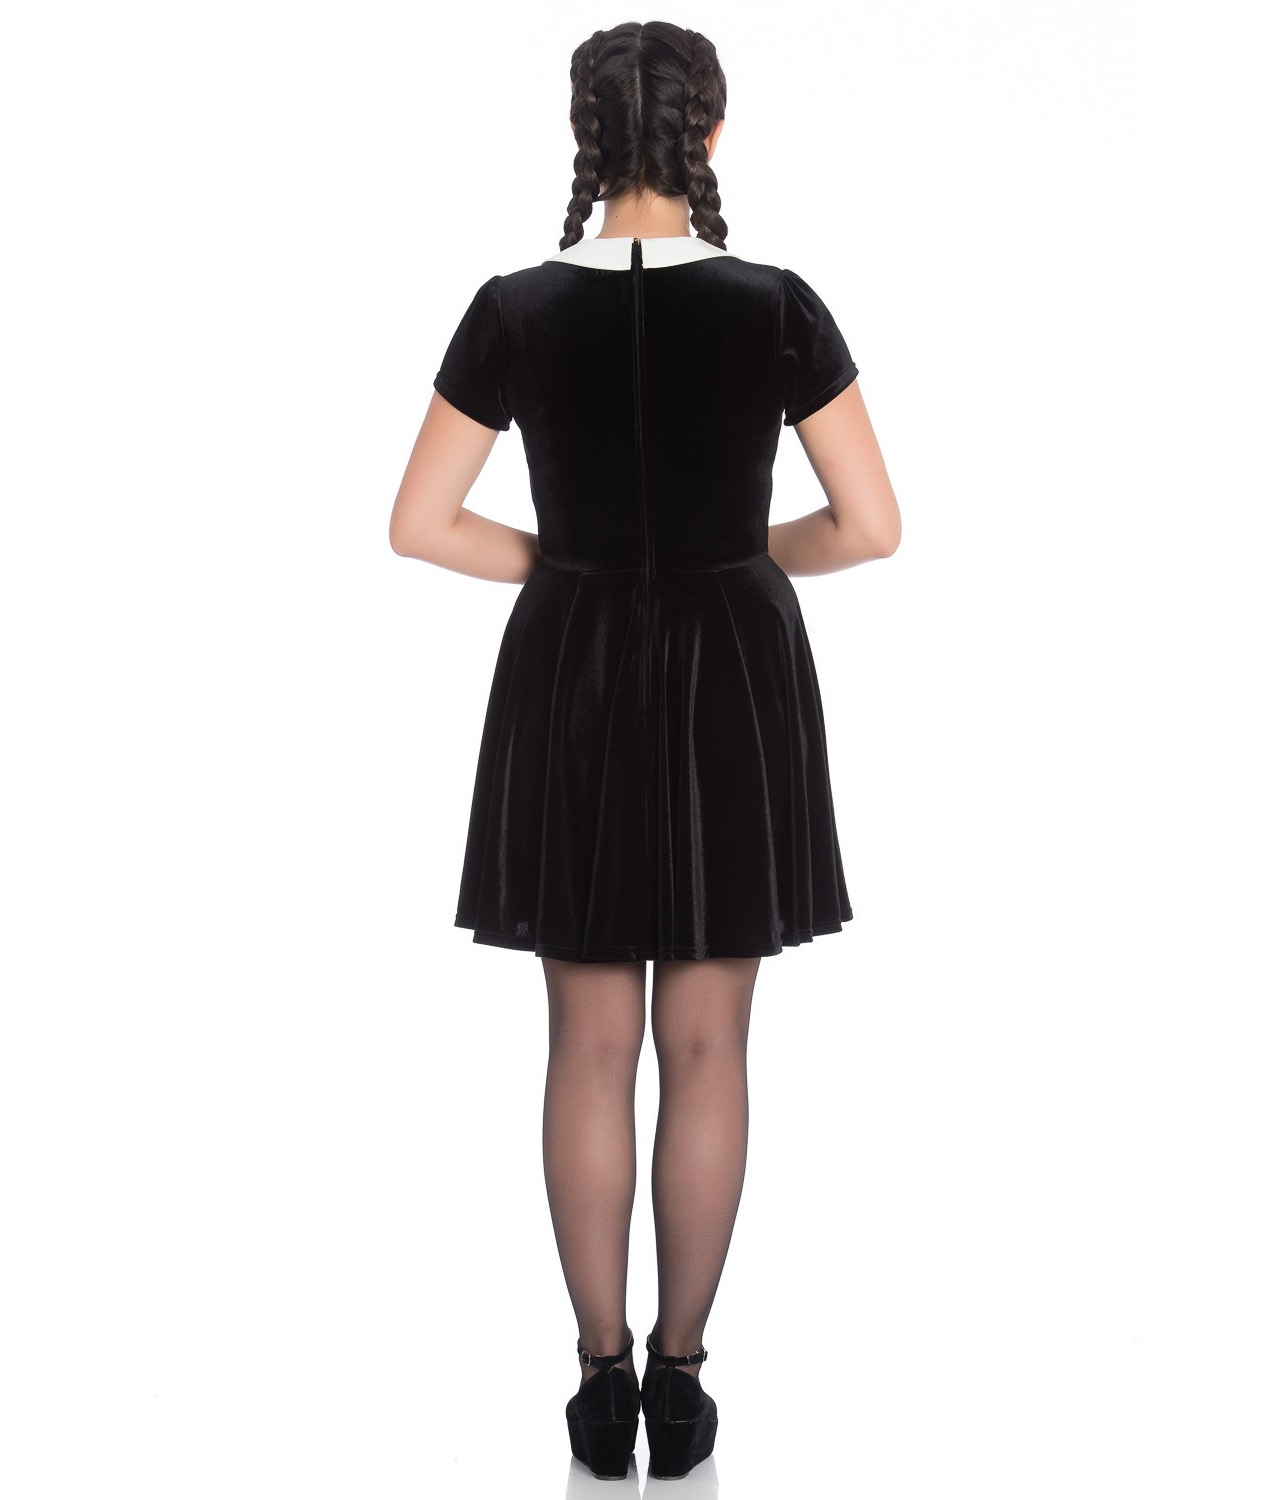 Hell-Bunny-Gothic-Mini-Skater-Dress-MISS-MUFFET-Spiders-Black-Velvet-All-Sizes thumbnail 5